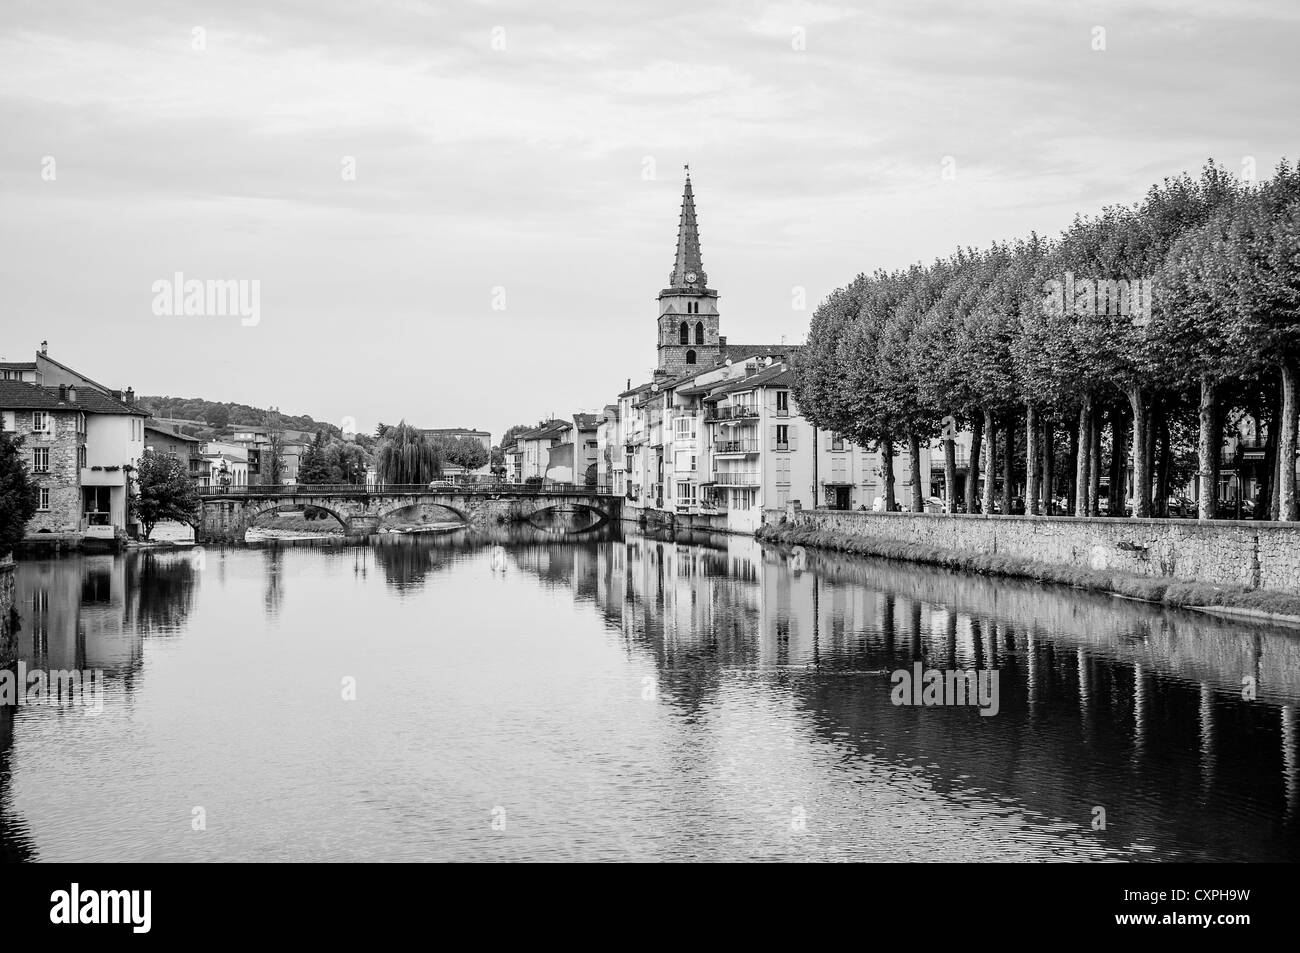 Black and white landscape view of St. Girons in the Midi-Pyrenees region of the South of France at dusk. - Stock Image